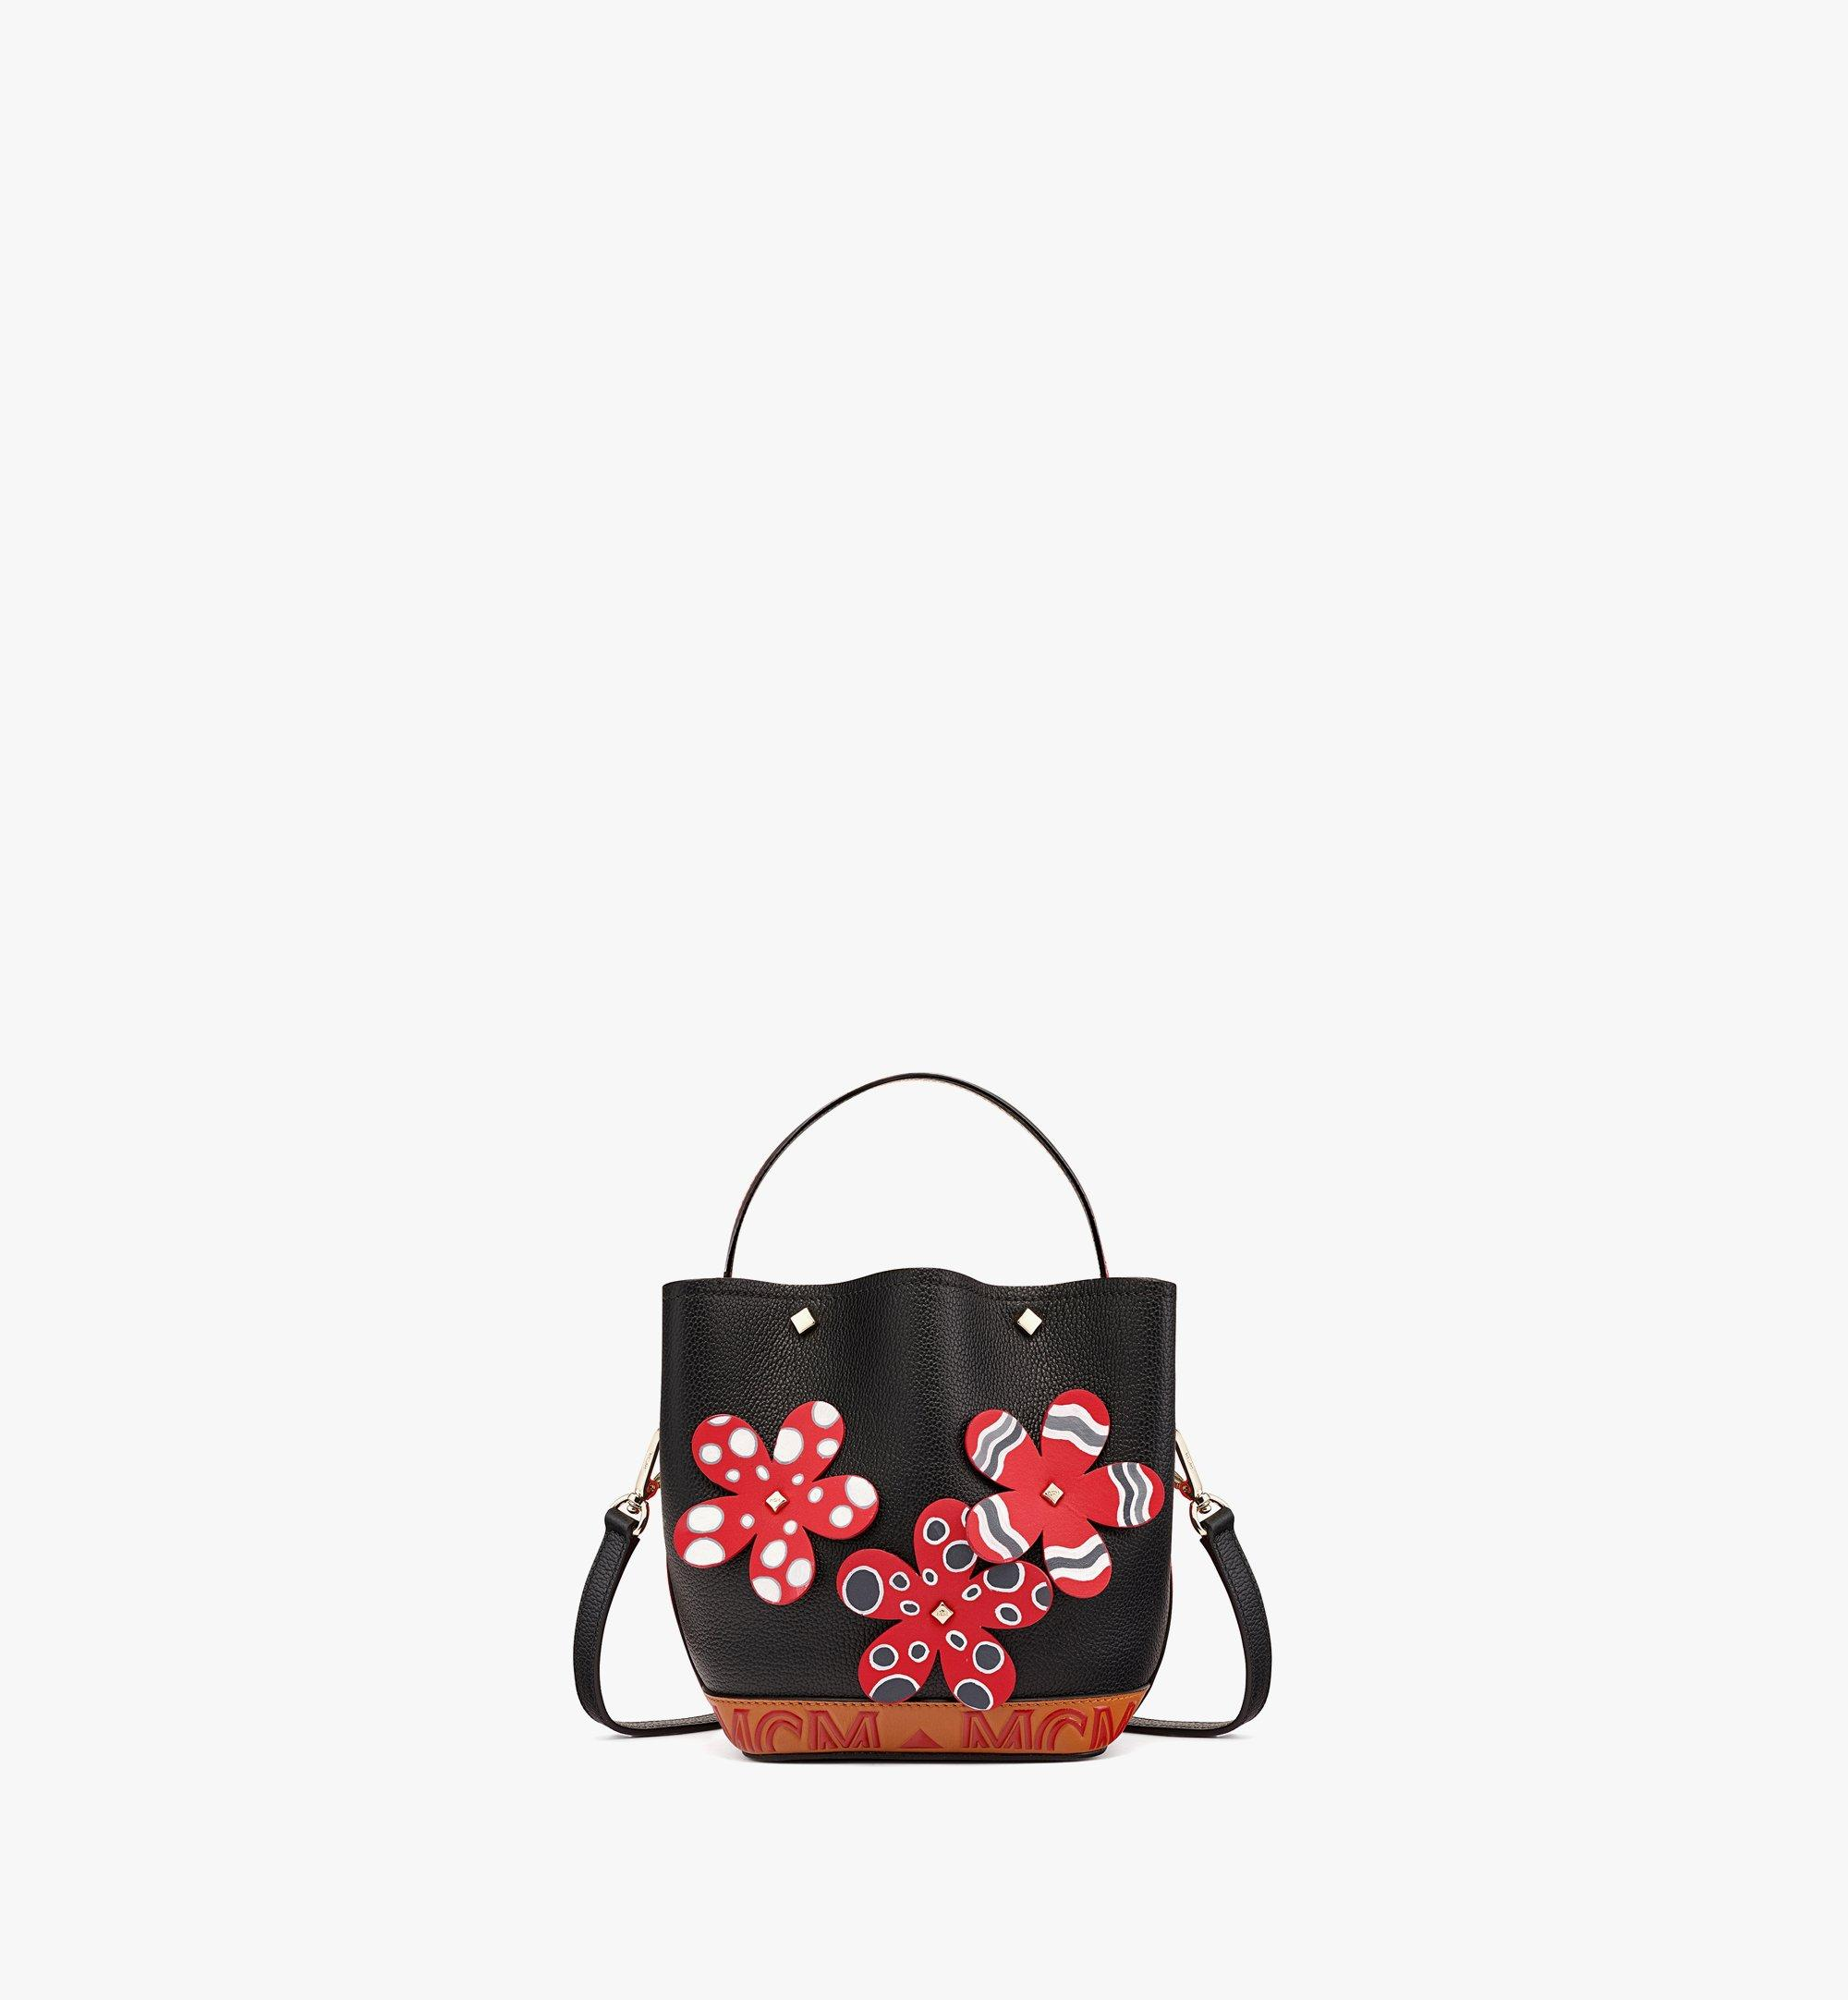 MCM Upcycling Project Flower Milano Drawstring Bag in Park Ave Leather Black MWDBAUP01BK001 Alternate View 1